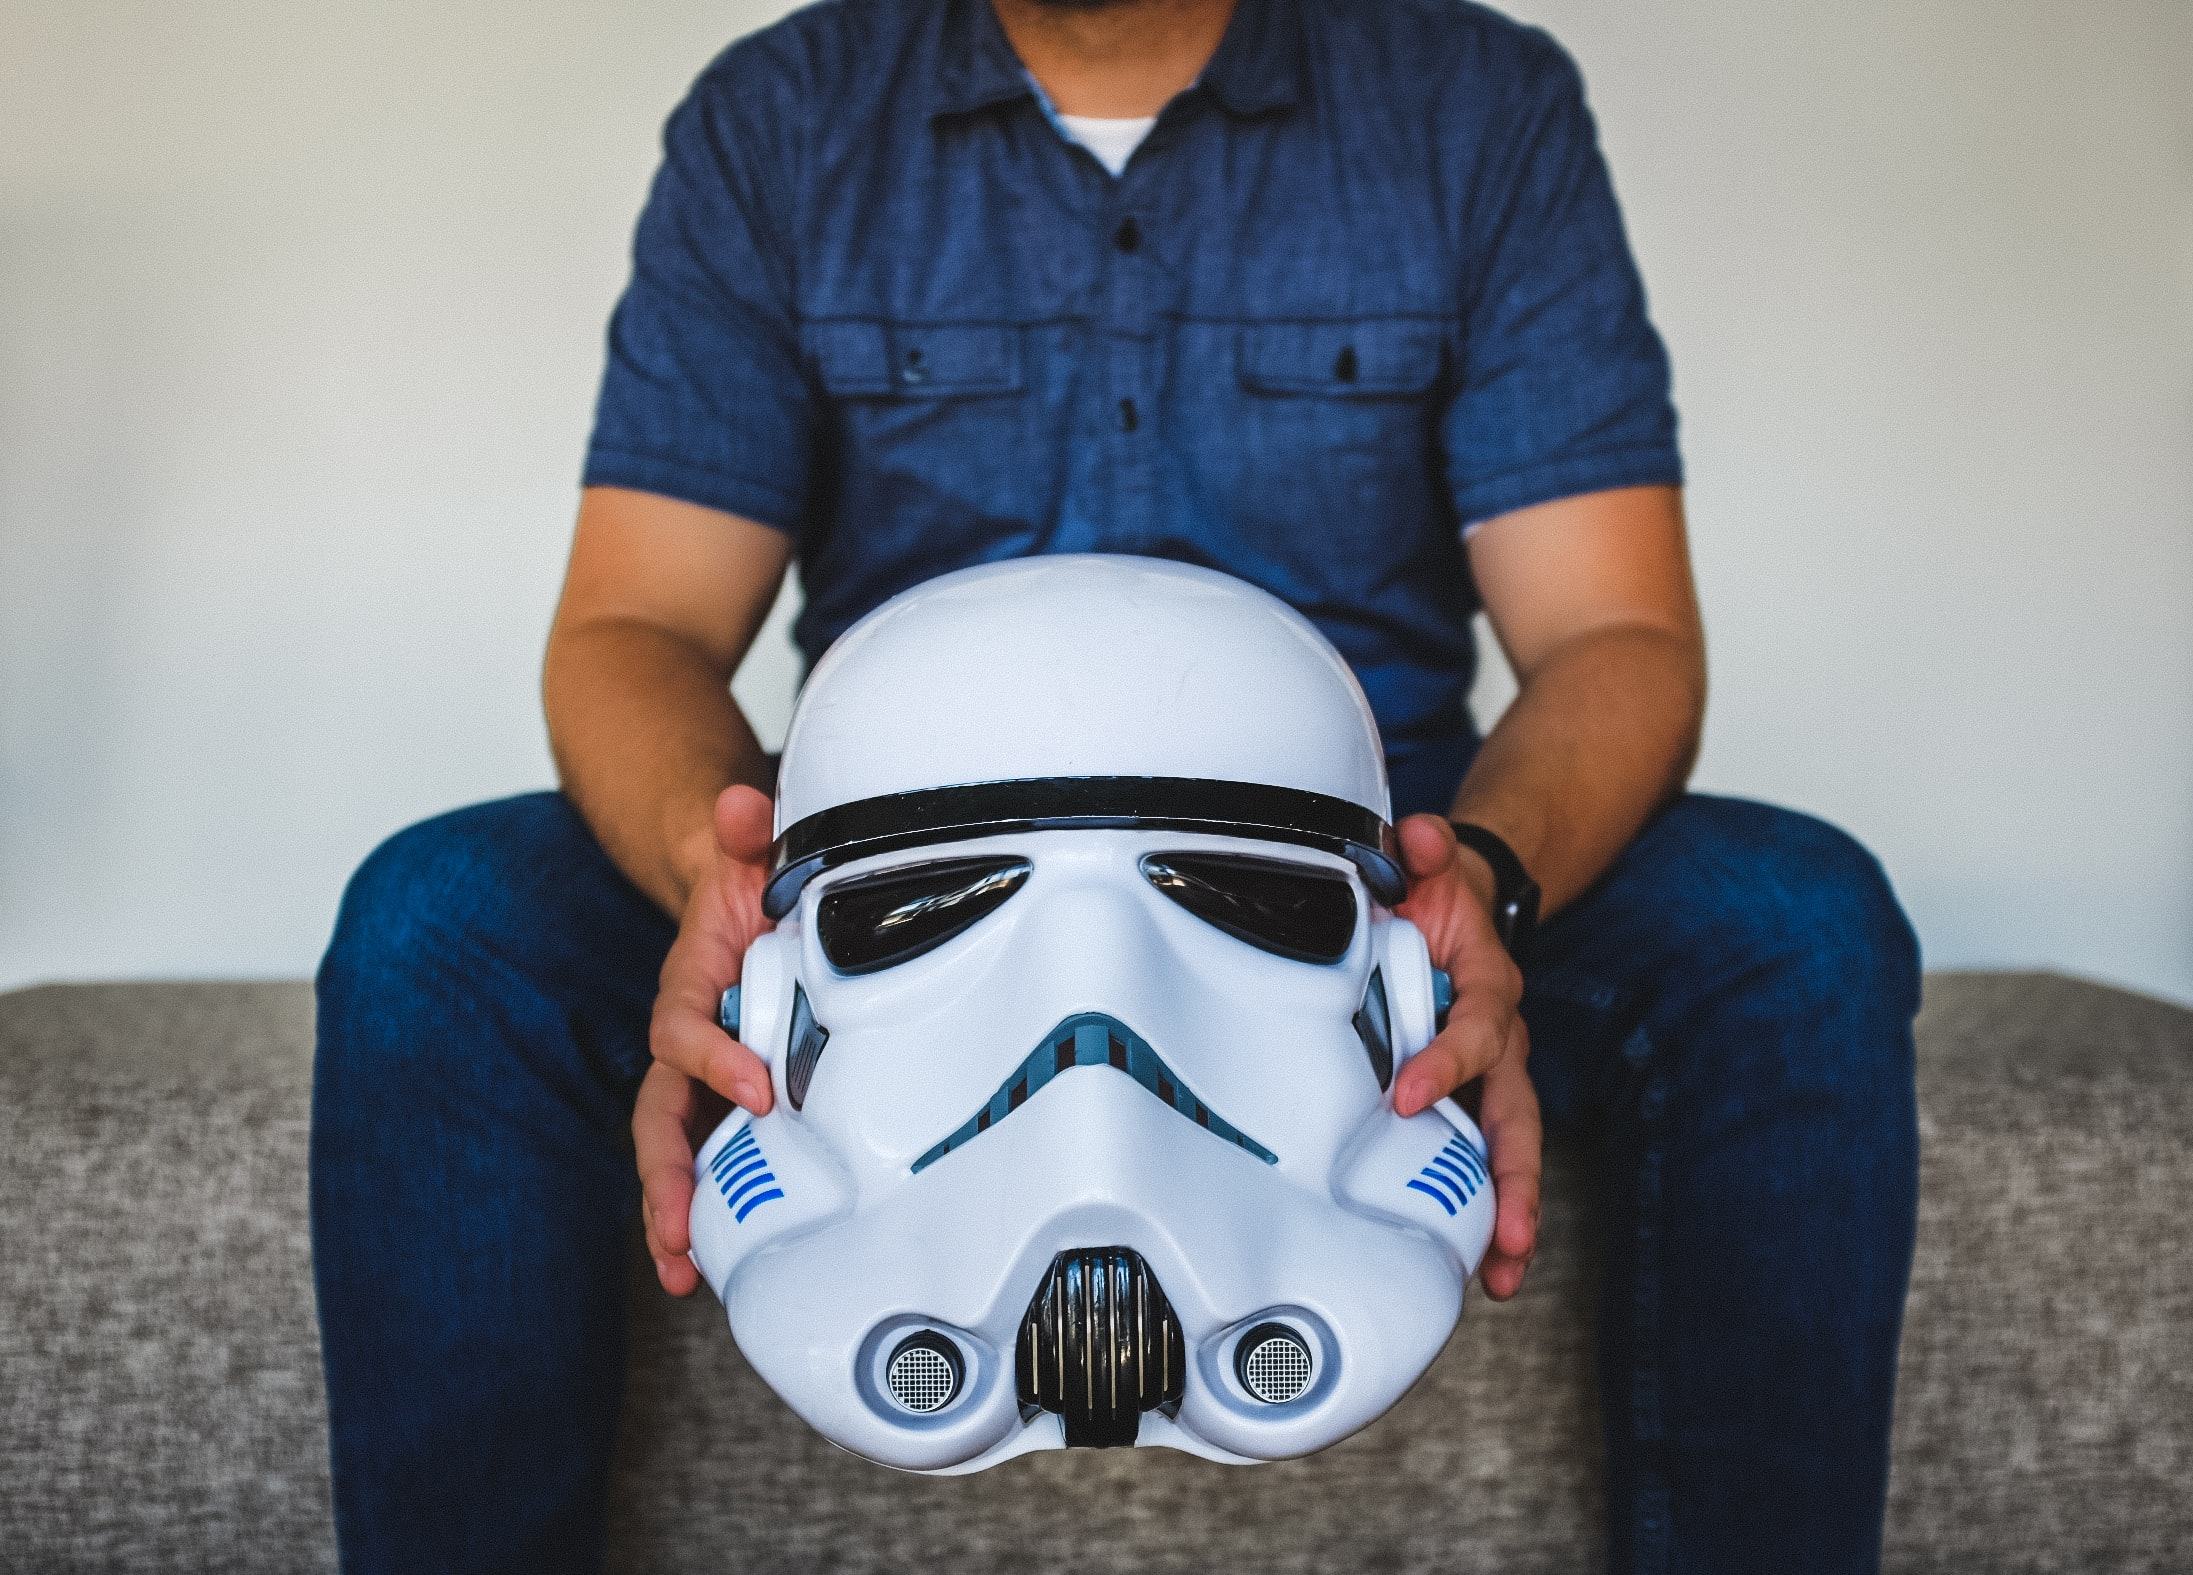 person sitting on sofa holding Stormtrooper helmet